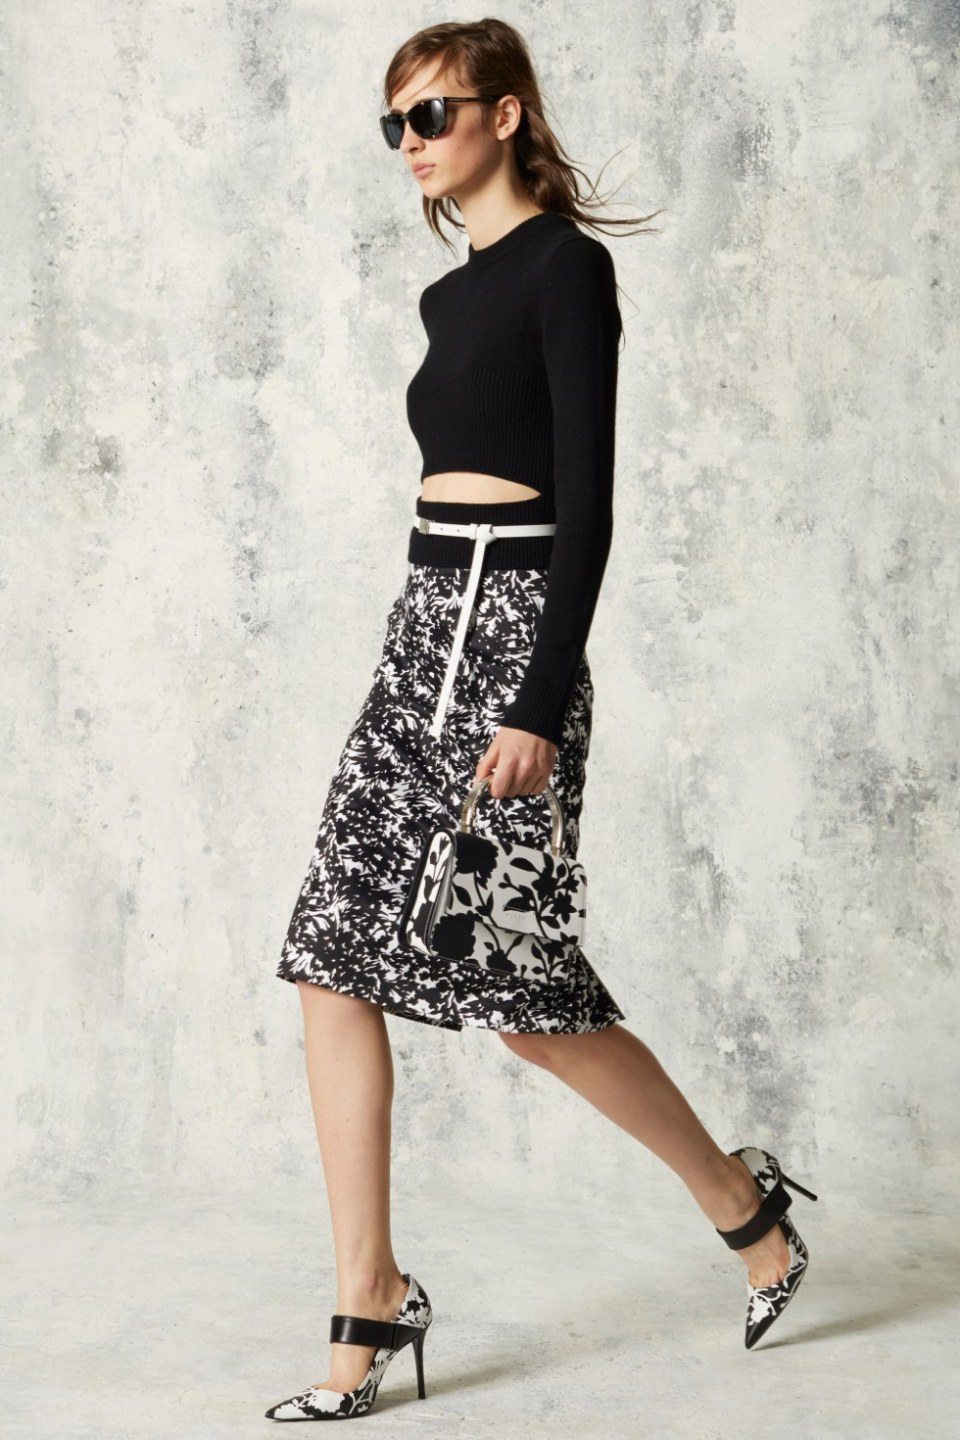 michael-kors-pre-fall-2016-lookbook-2